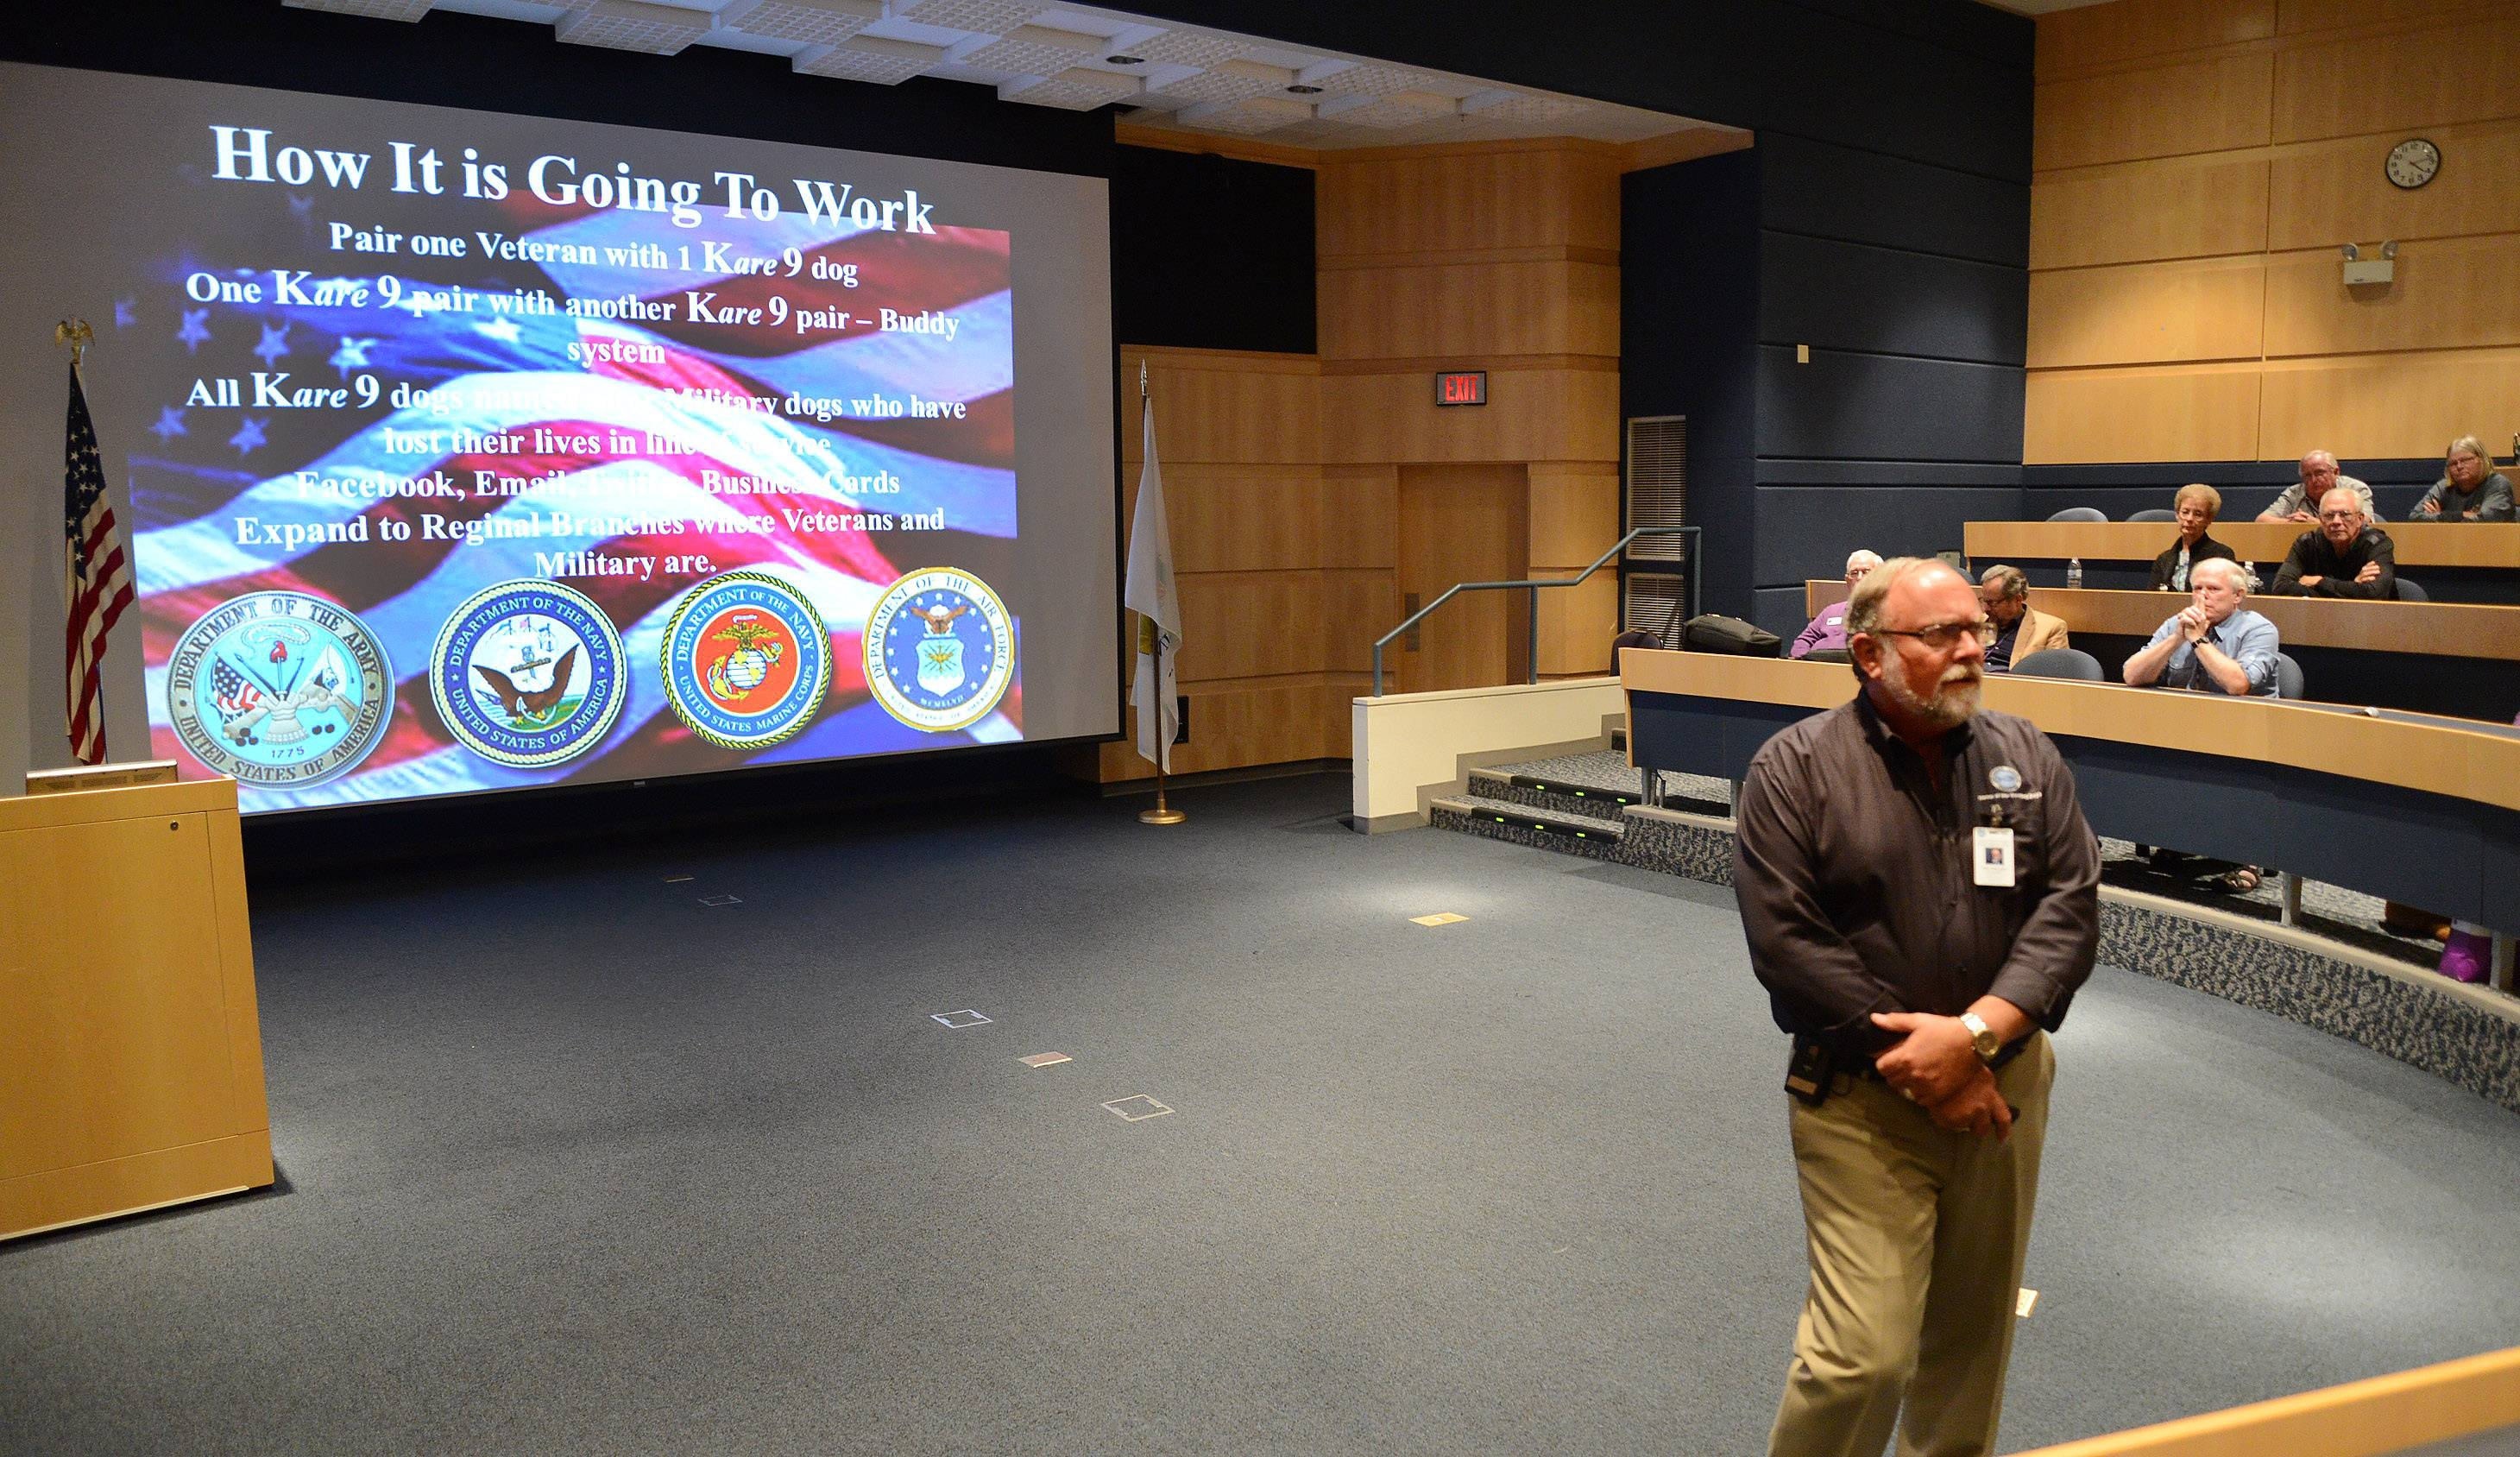 Tim Hetzner, president of Lutheran Church Charities, who runs the Comfort Dog Ministry, launches the Kare-9 Ministry geared specifically to military veterans and their families Friday during the group's national convention at Harper College.